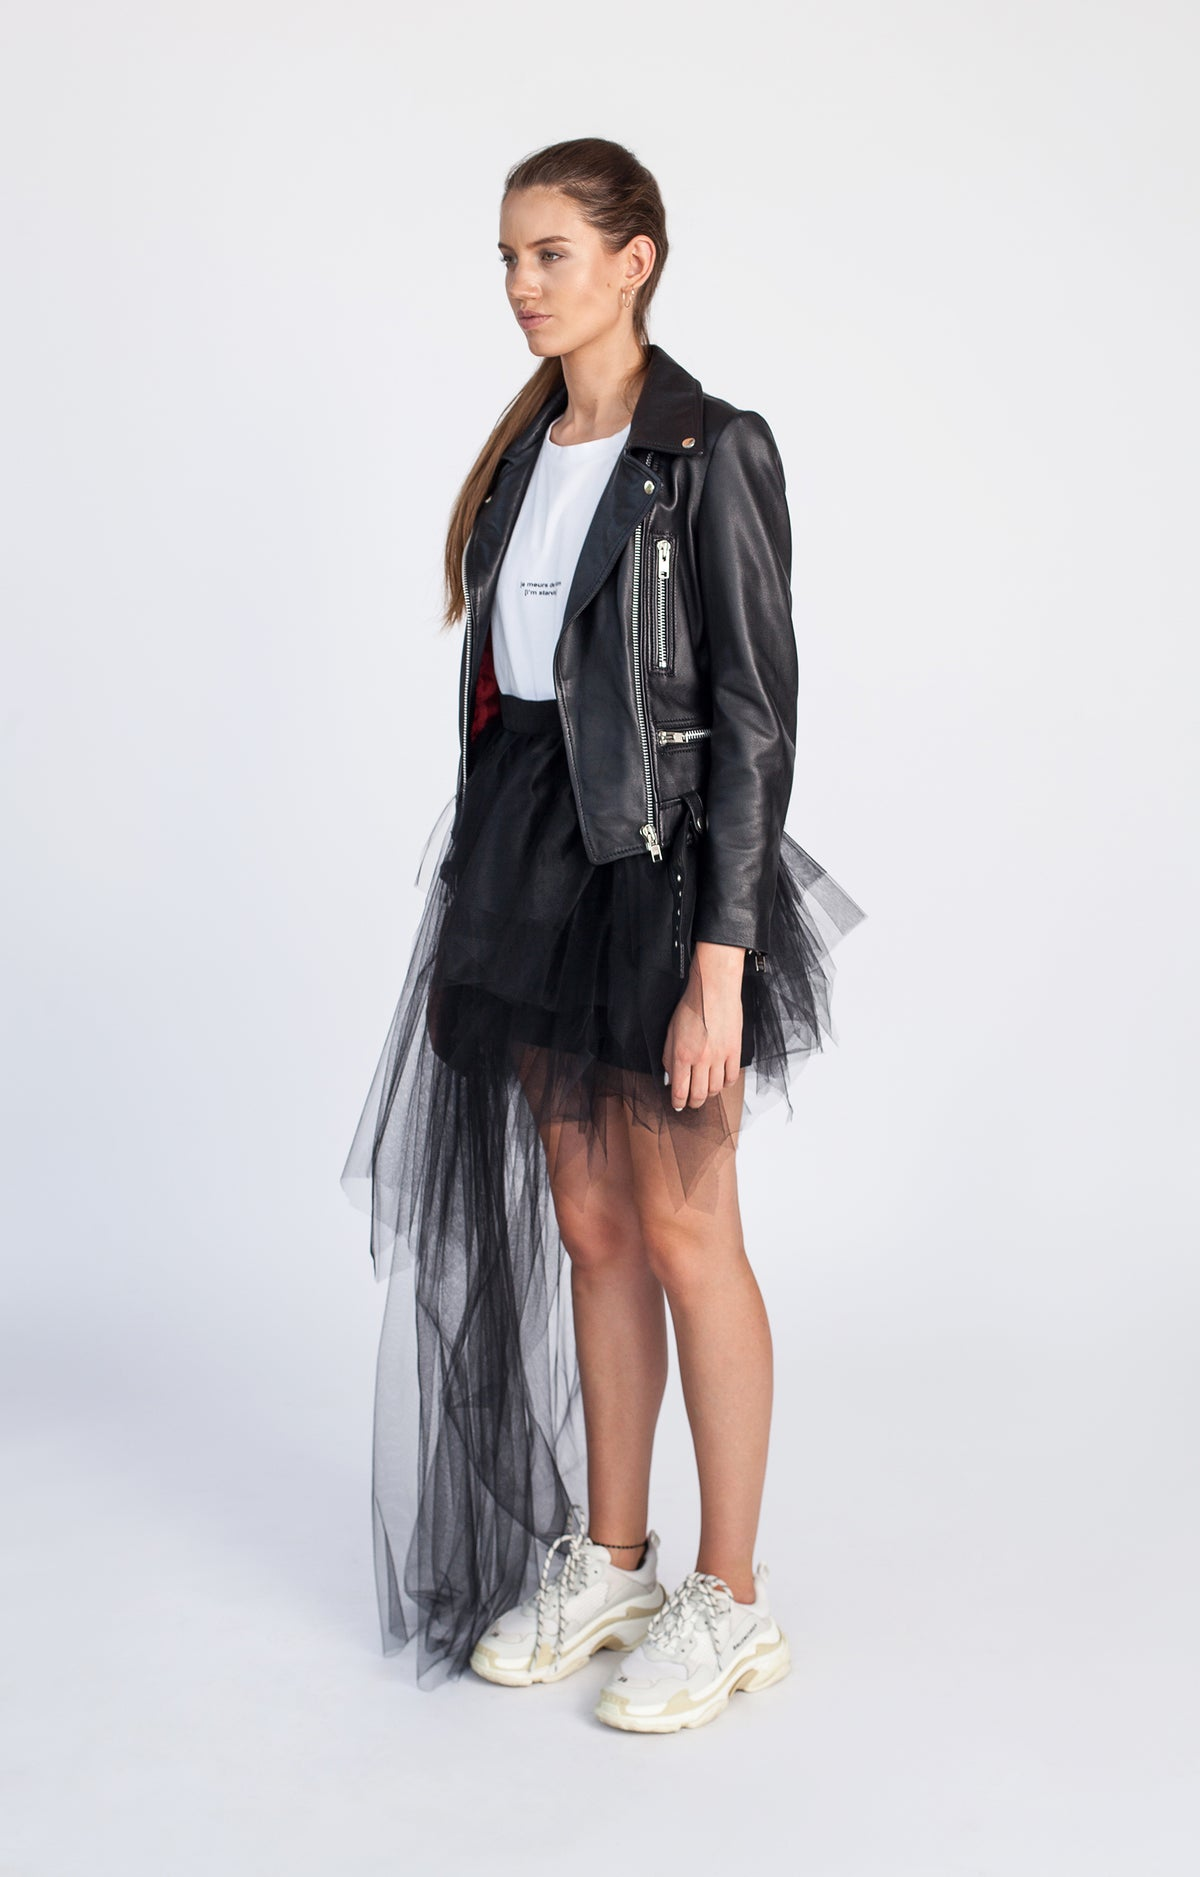 Black-Tulle-Drape-Skirt-Ocassion-Wear-Clothing-le-slap.jpg